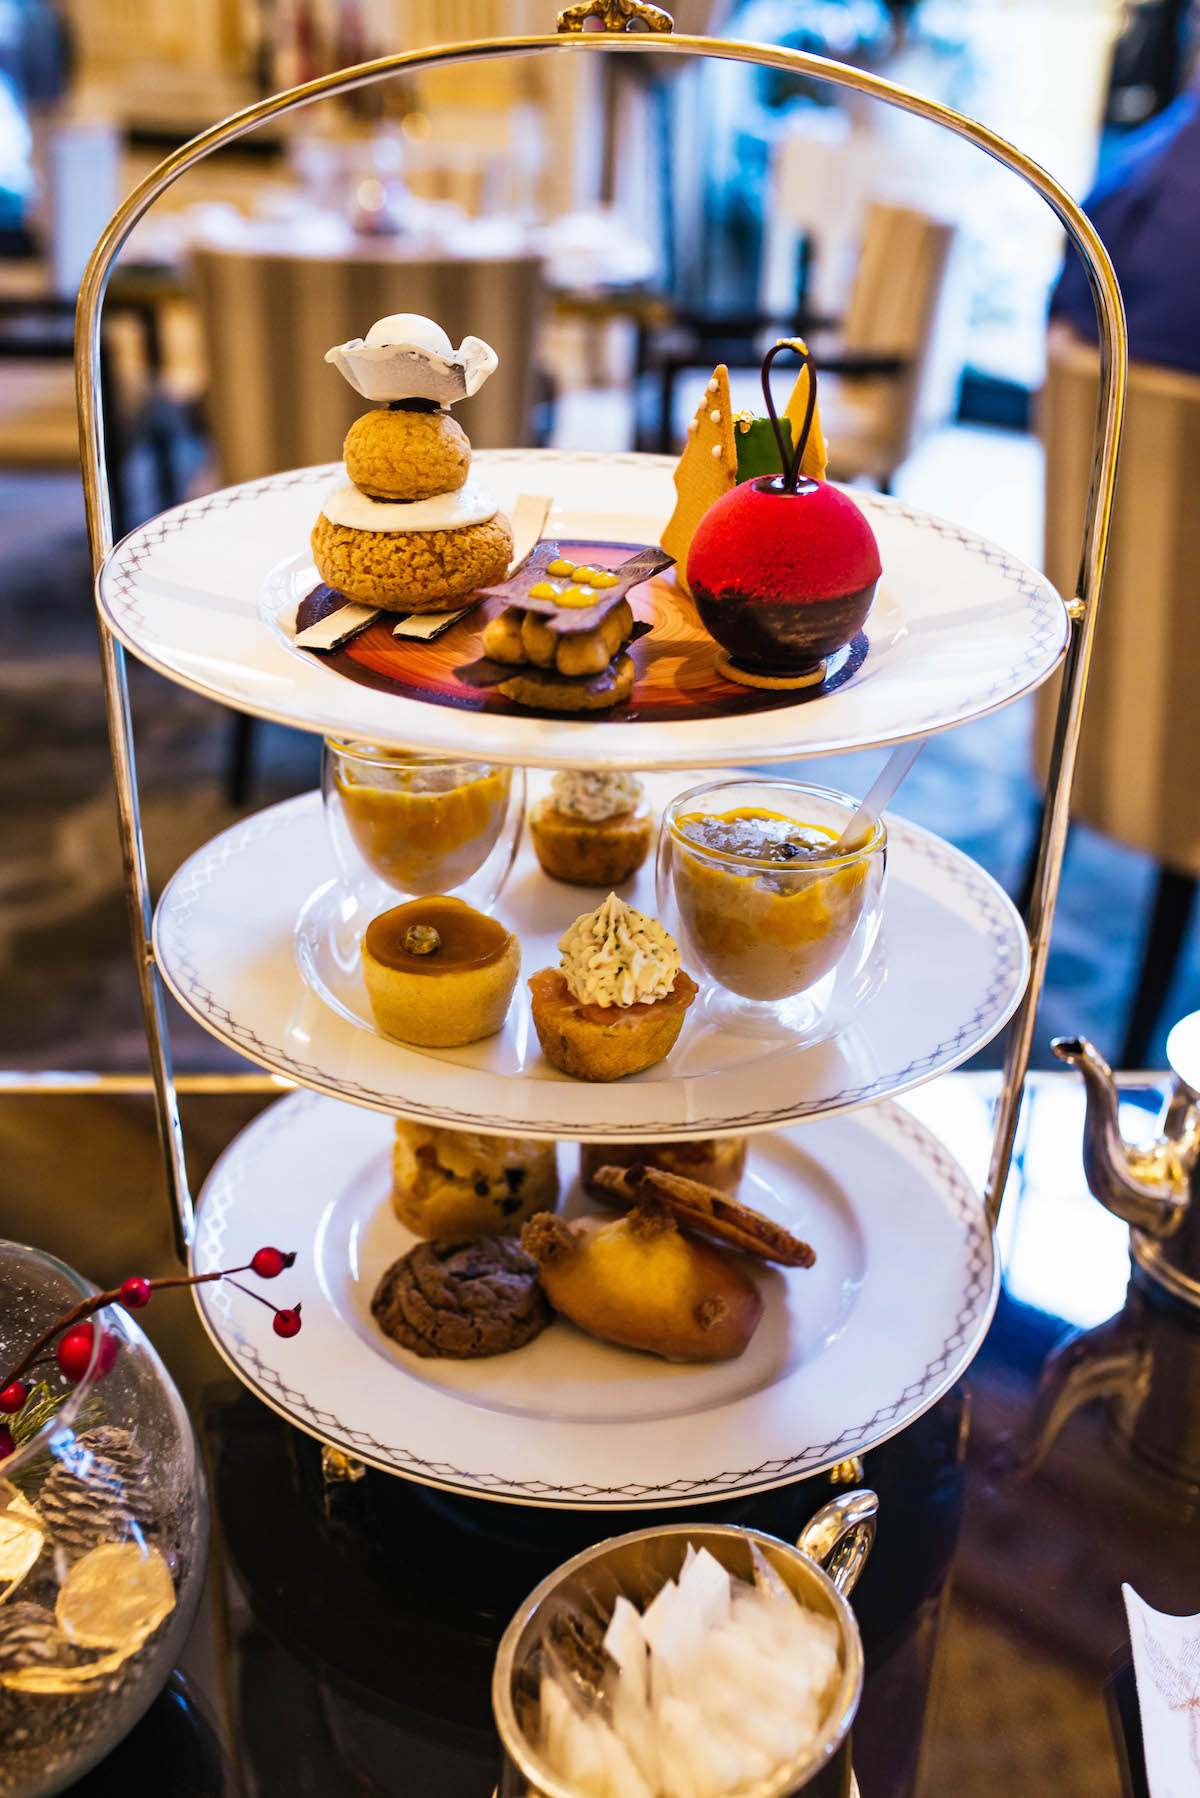 Peninsula Hotel Paris Holiday Tea